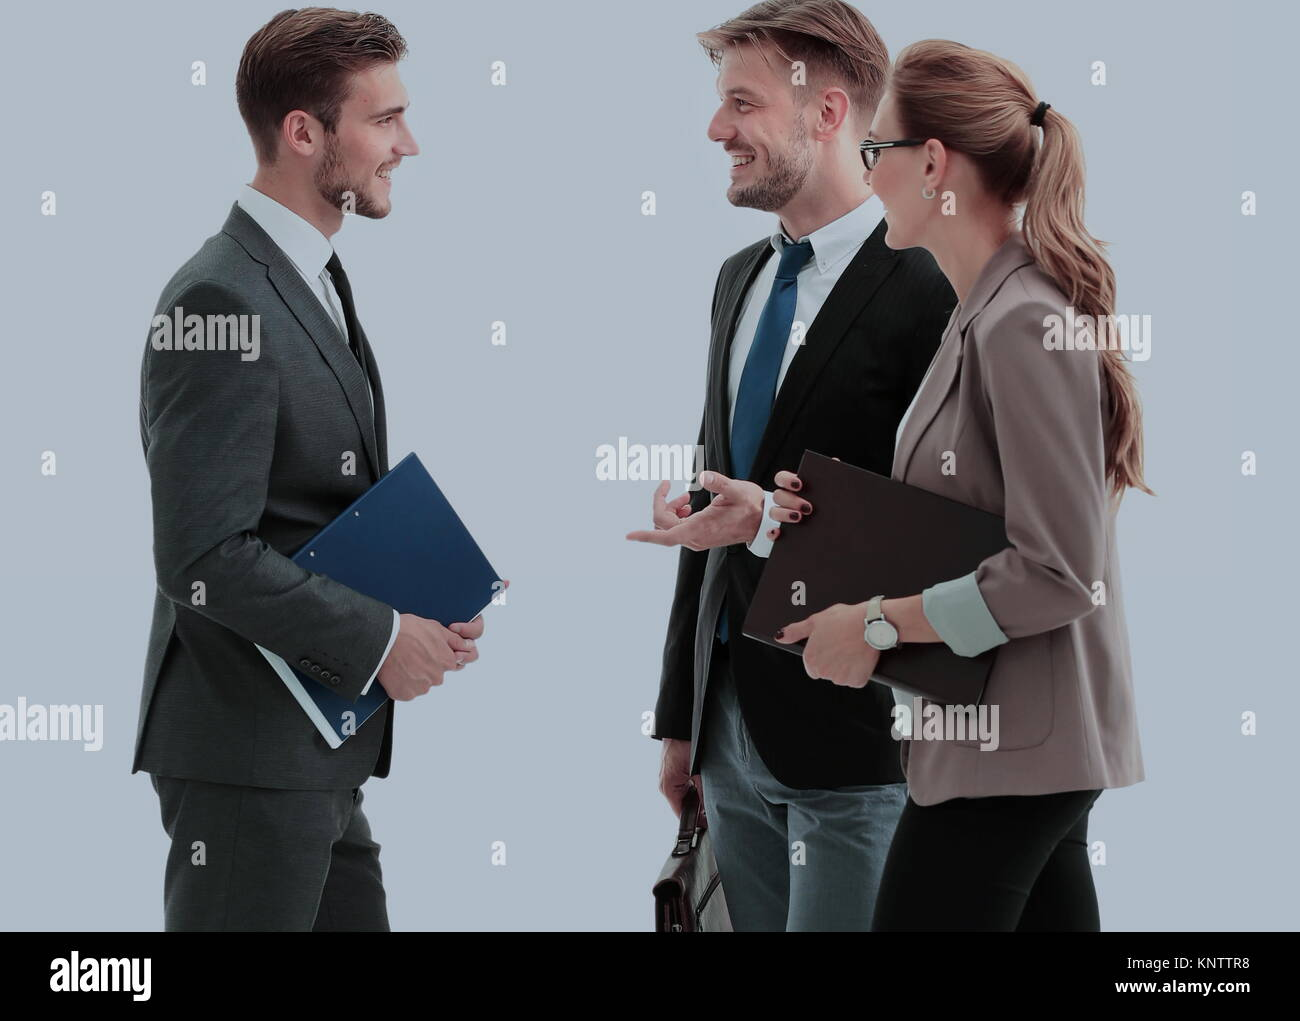 Image of business partners discussing ideas at meeting - Stock Image